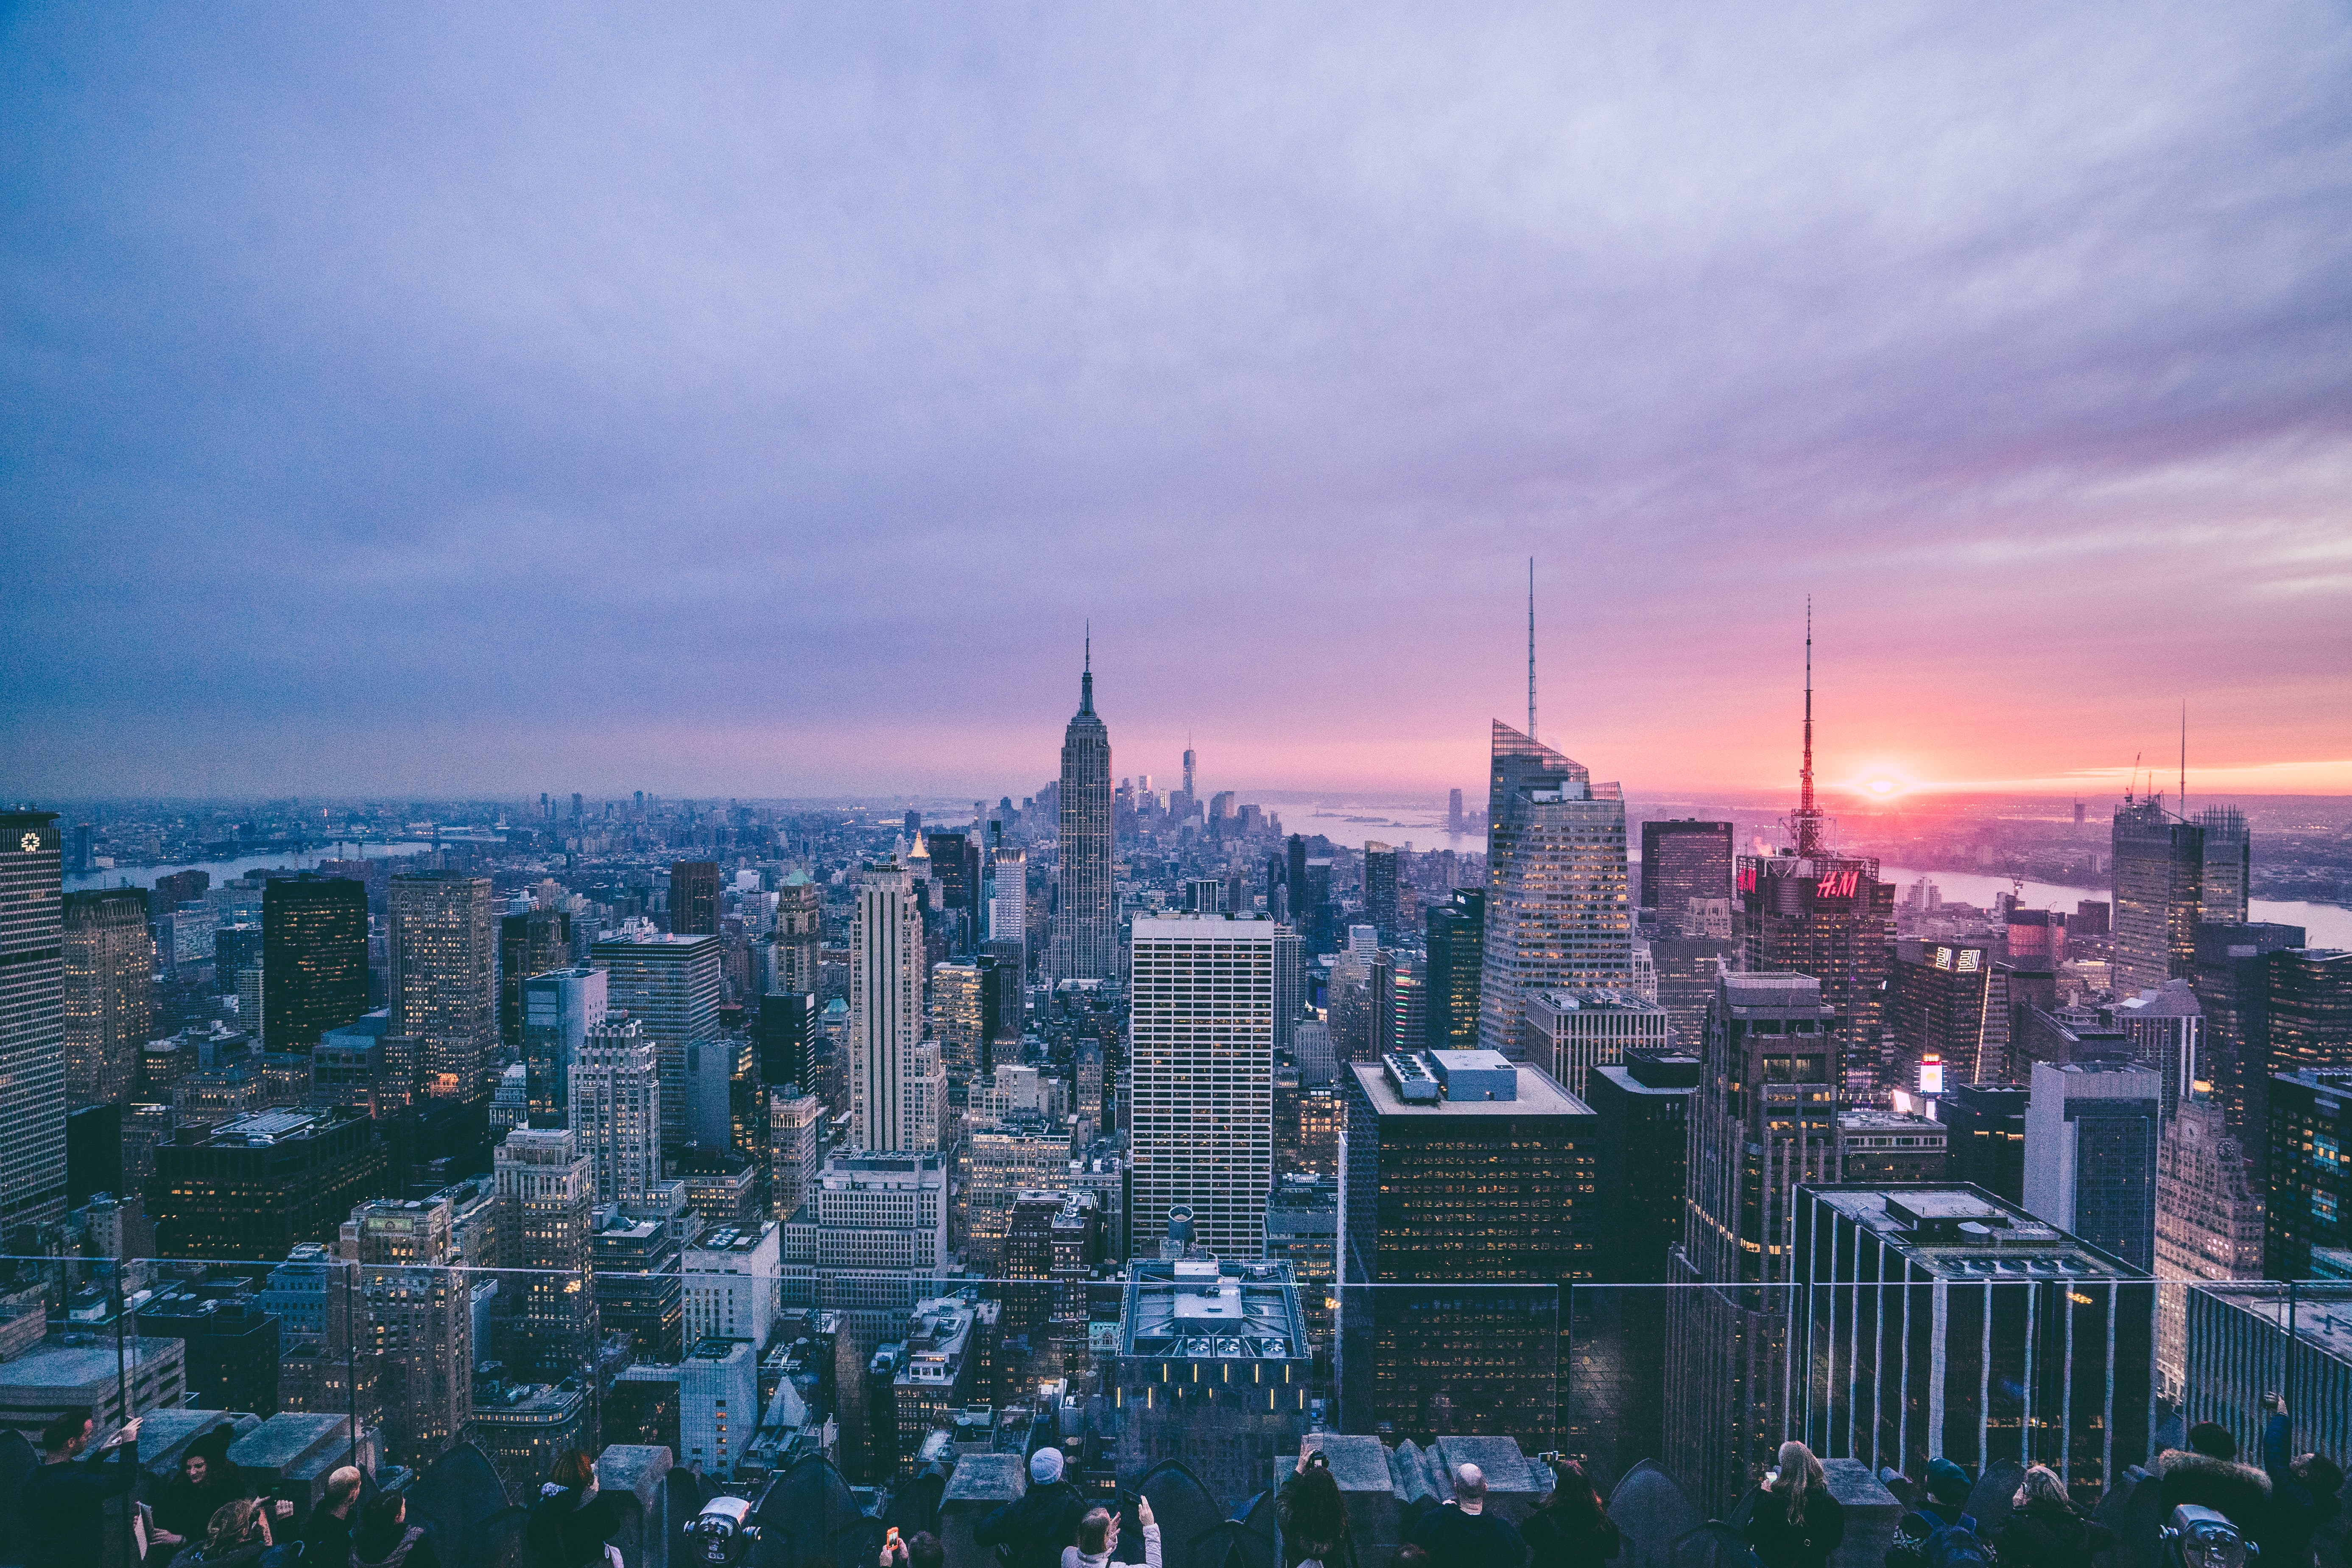 View from the Rockefeller Center on New York City Skyline on an evening